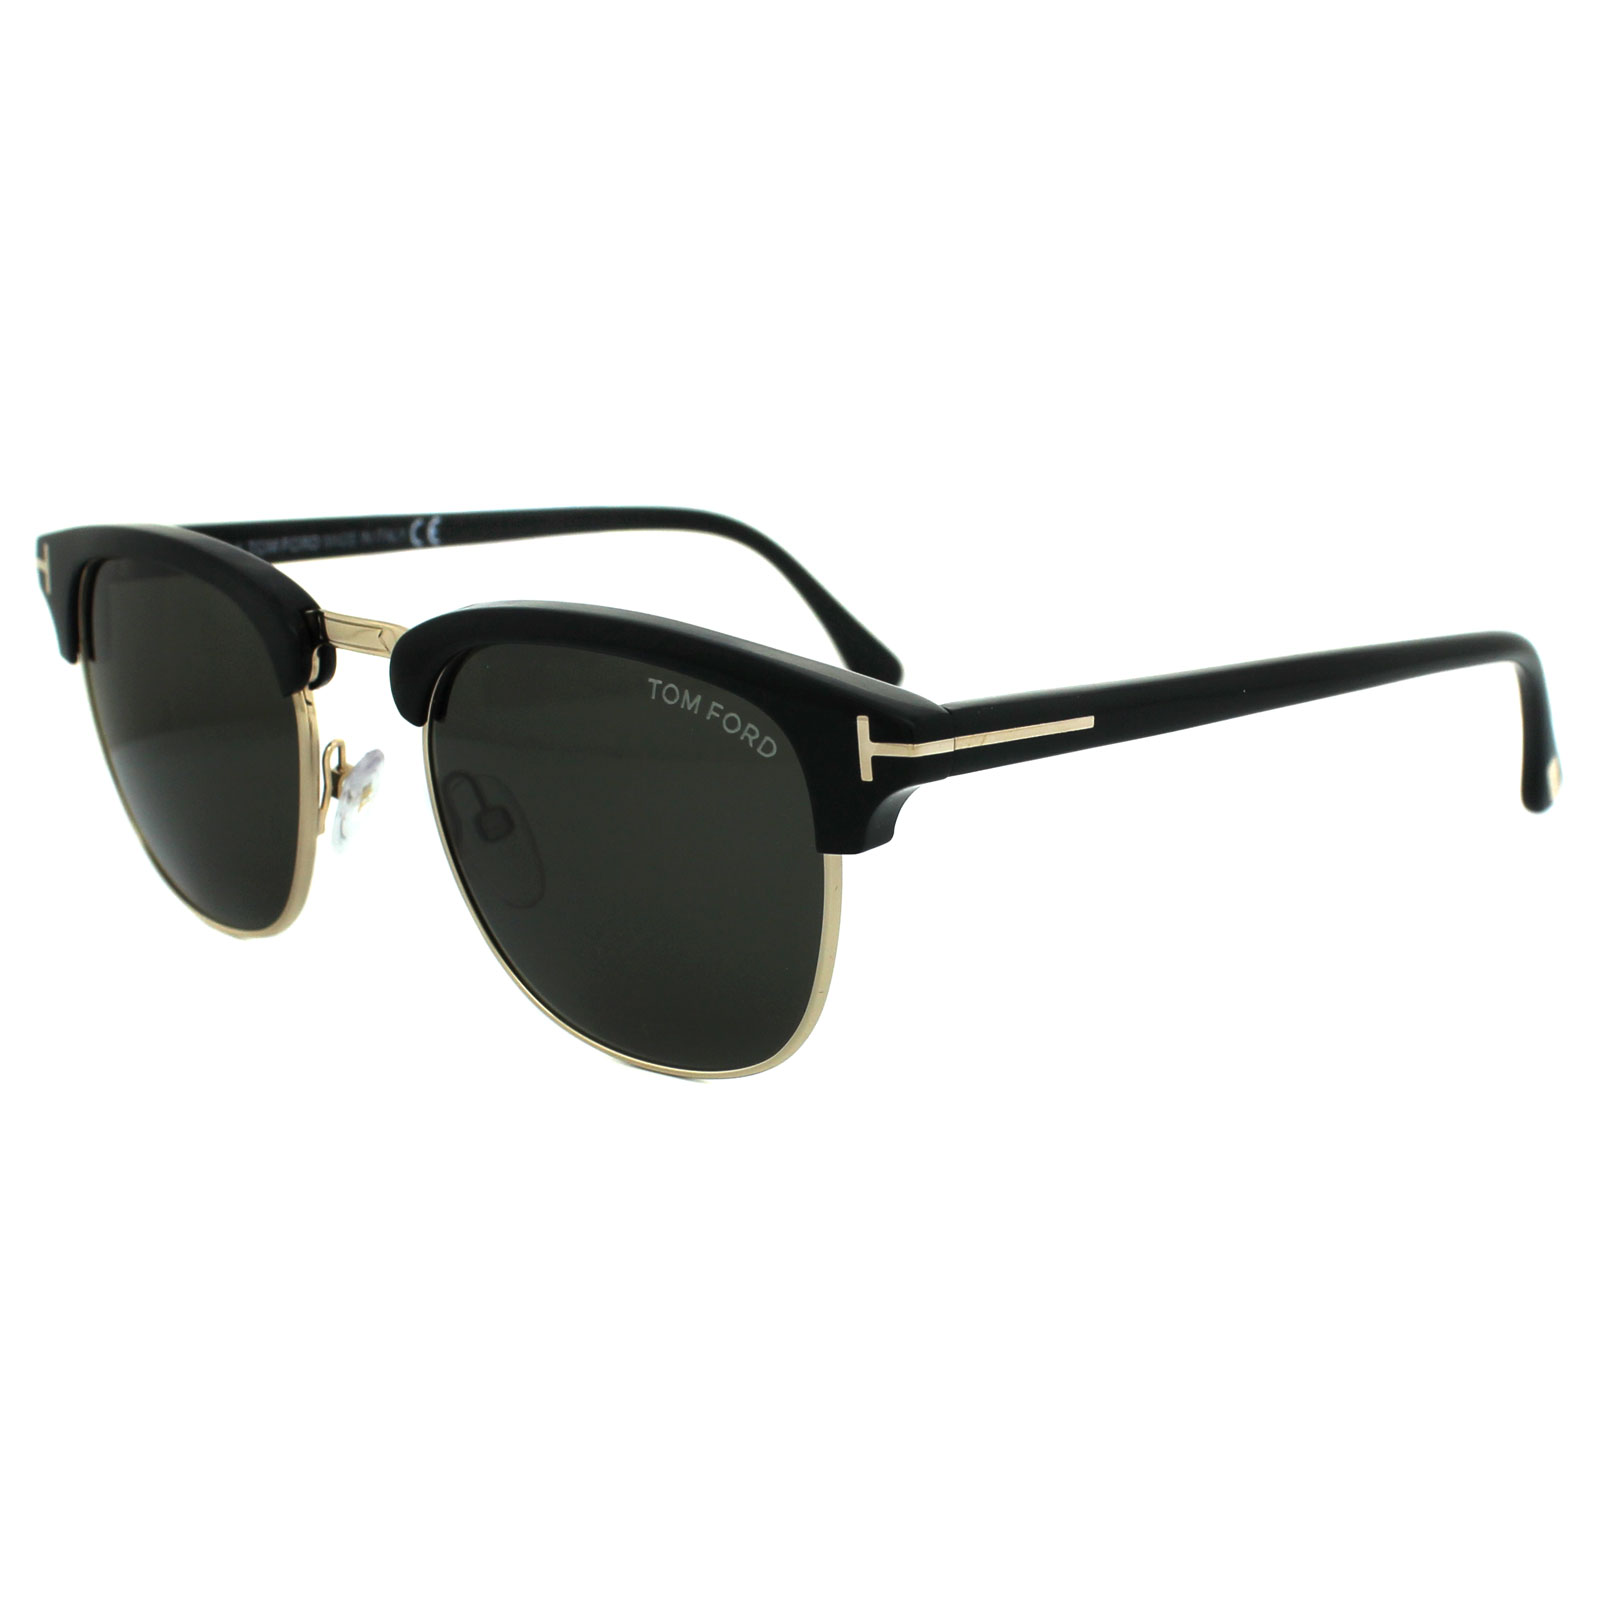 e6a9a5fc2d2ac Tom Ford Sunglasses 0248 Henry 05N Black   Gold Green 664689523986 ...